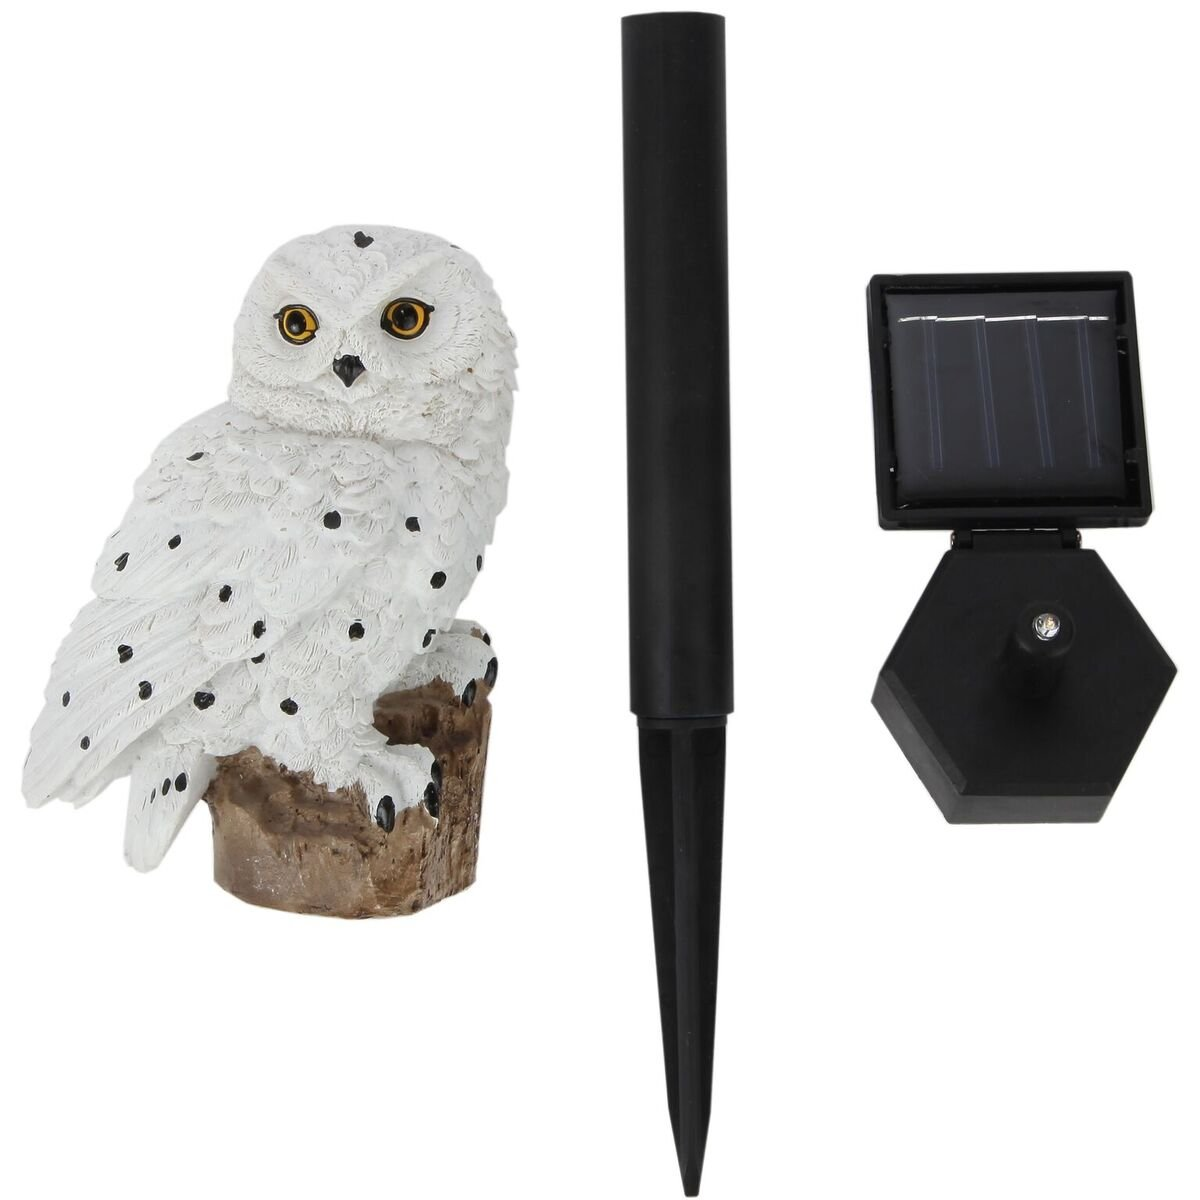 Trenton Gifts Weather Resistant Outdoor LED Solar Owl Light, Garden Stake | White by Trenton Gifts (Image #3)